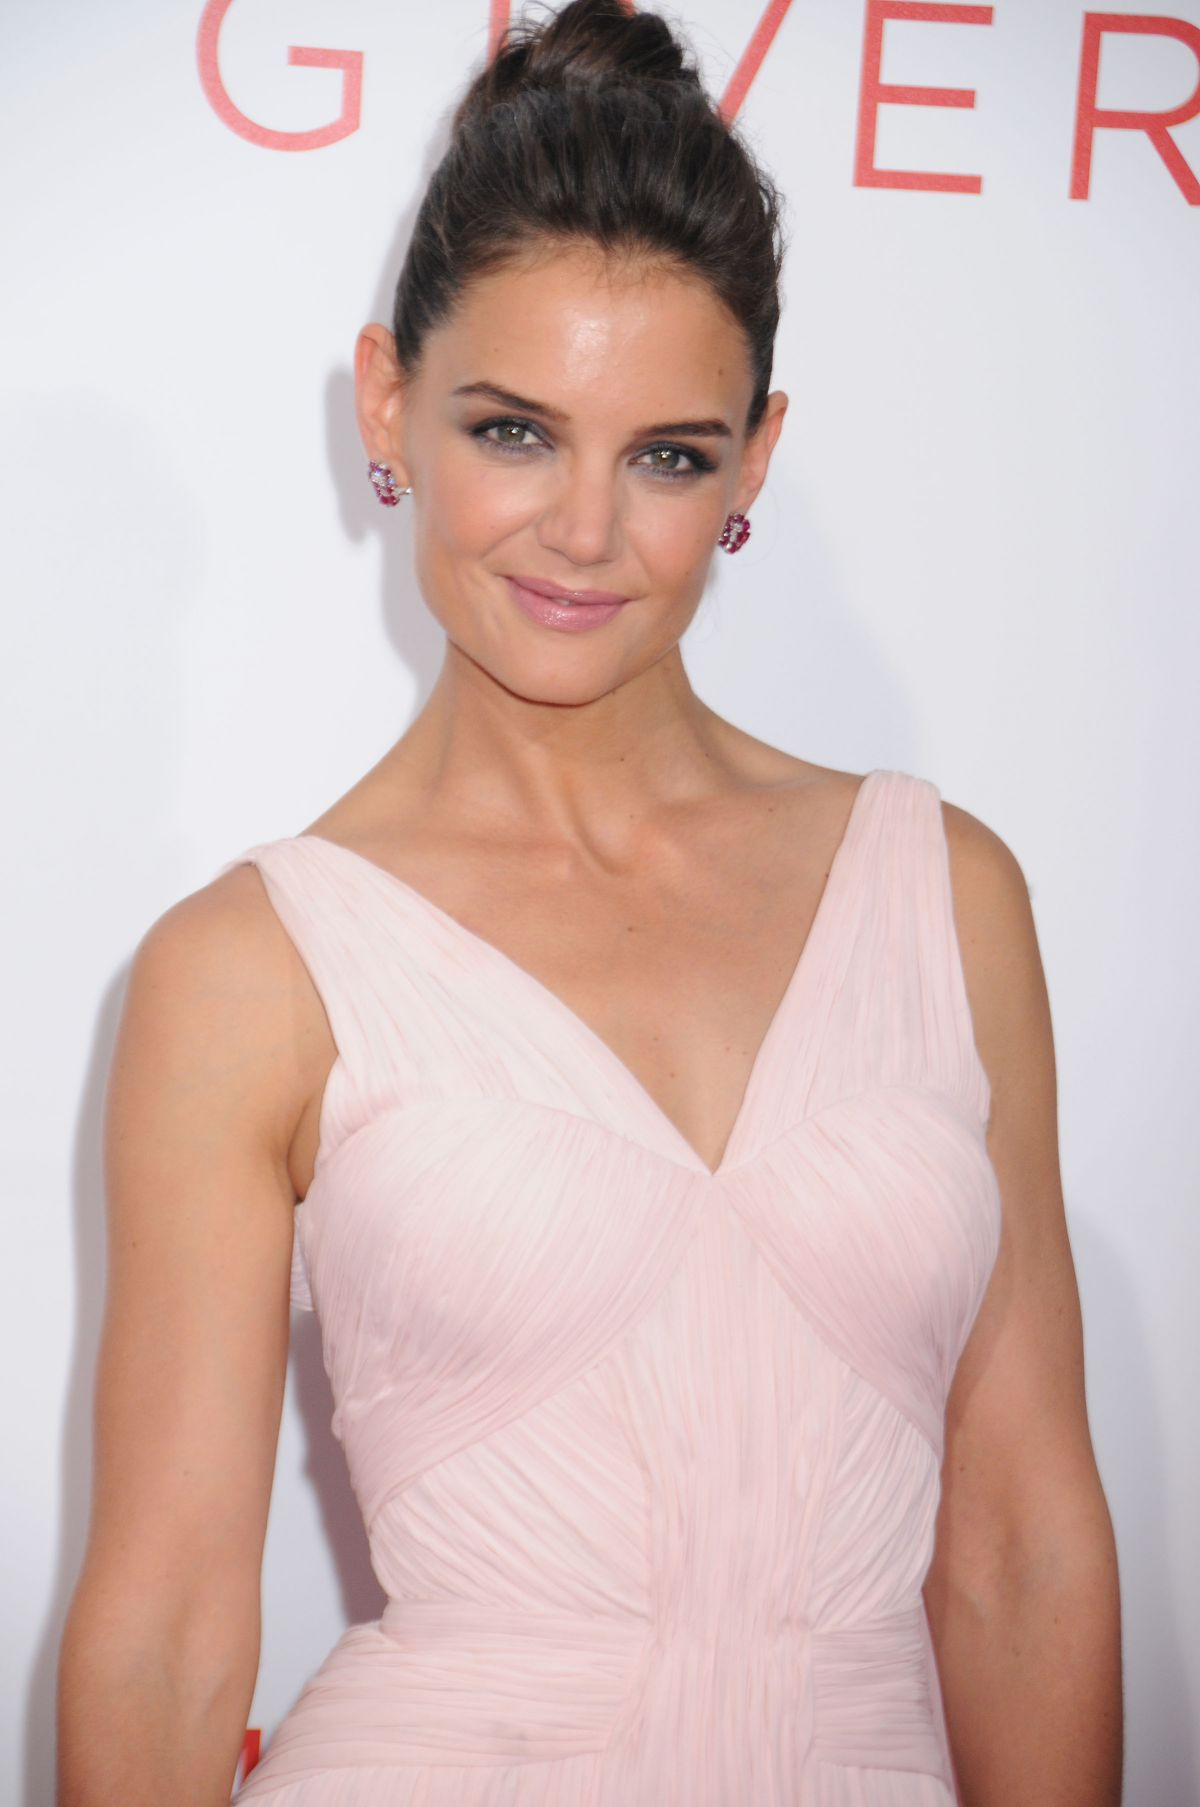 KATIE HOLMES at The Giver Premiere in New York